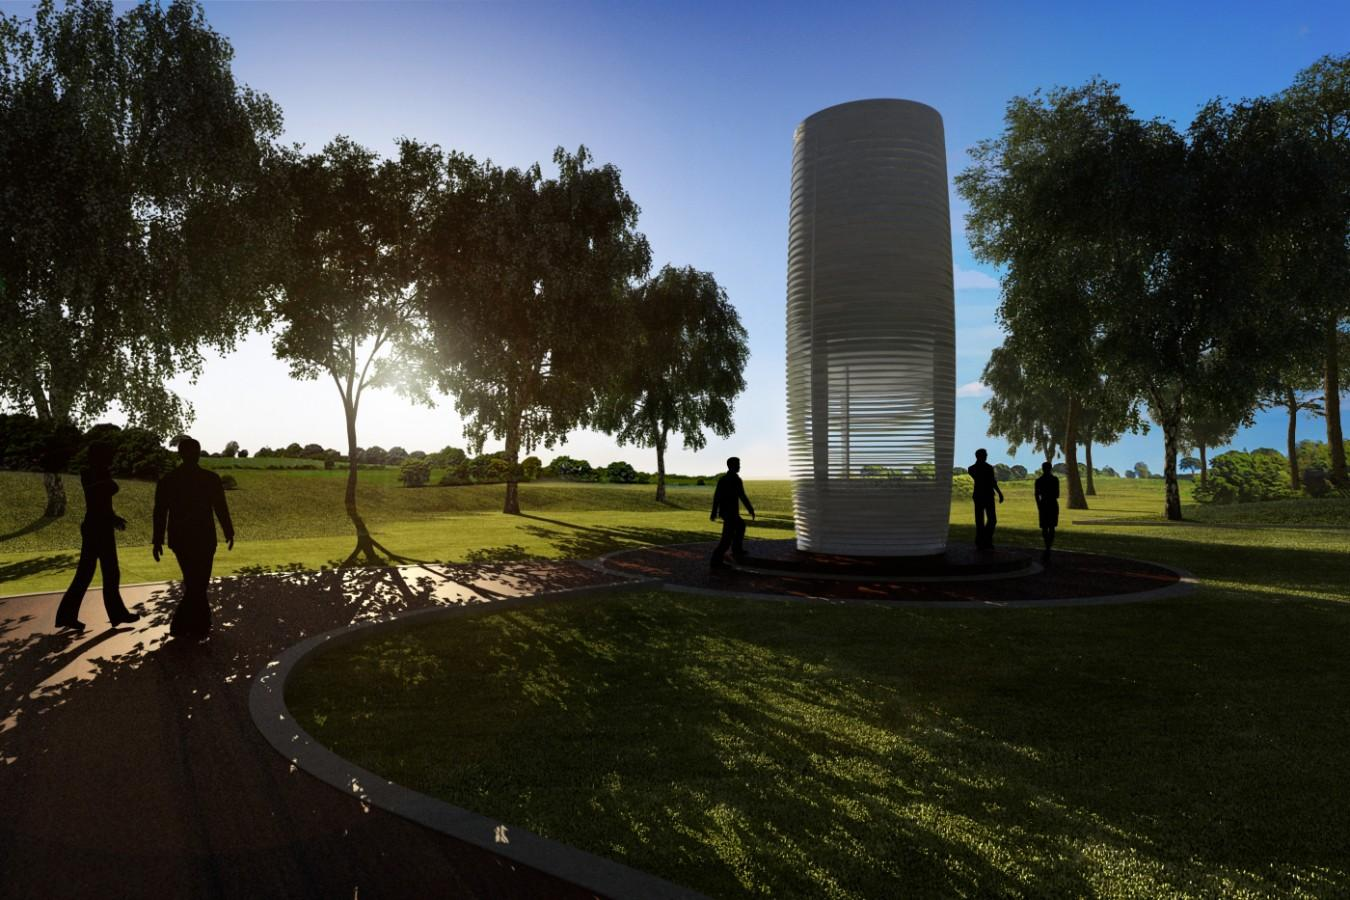 The Smog Free Tower is a planned 7 x 3.5 m (23 x 11.5 ft) structure that draws in dirty air and purifies it before expelling it back into the environment